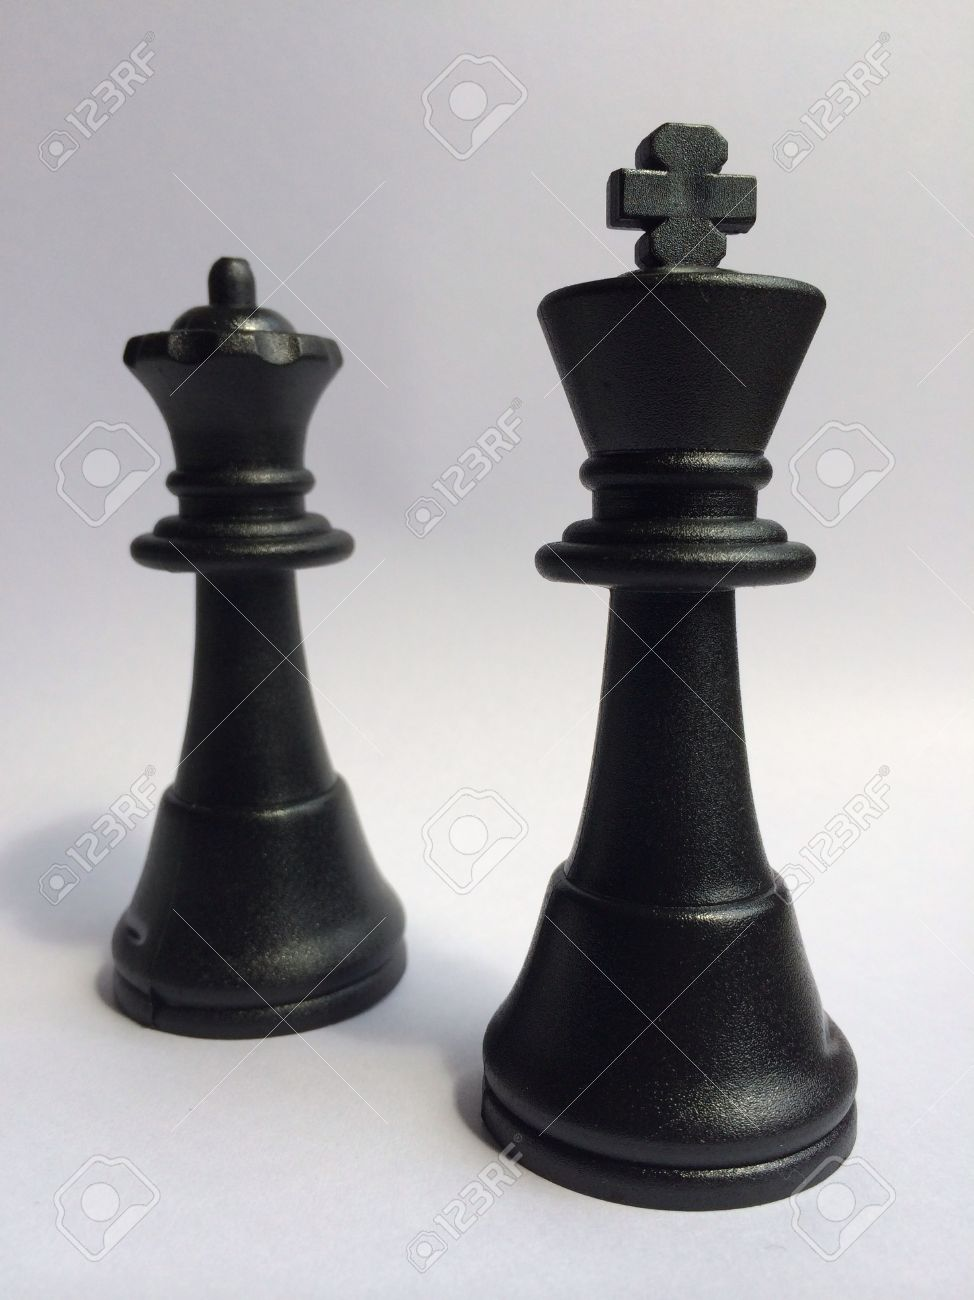 Black King And Queen Chess Pieces Stock Photo Picture And Royalty